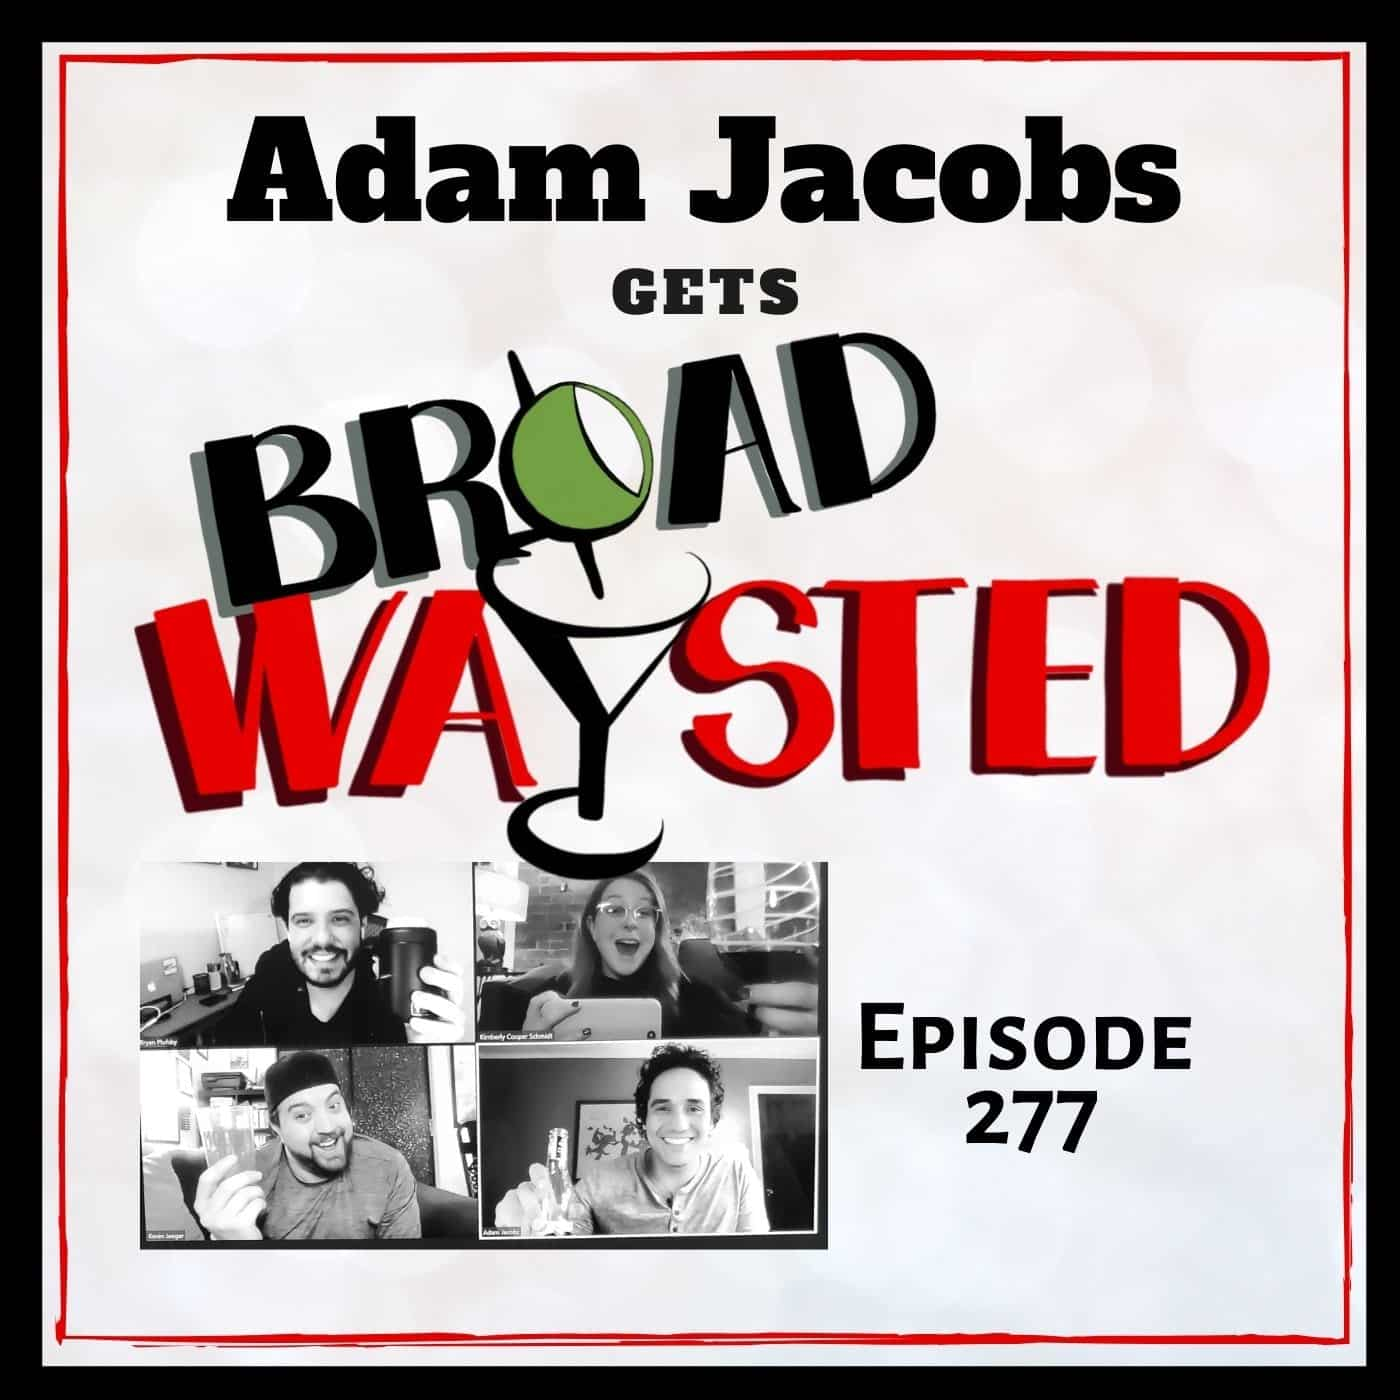 Episode 277: Adam Jacobs gets Broadwaysted!